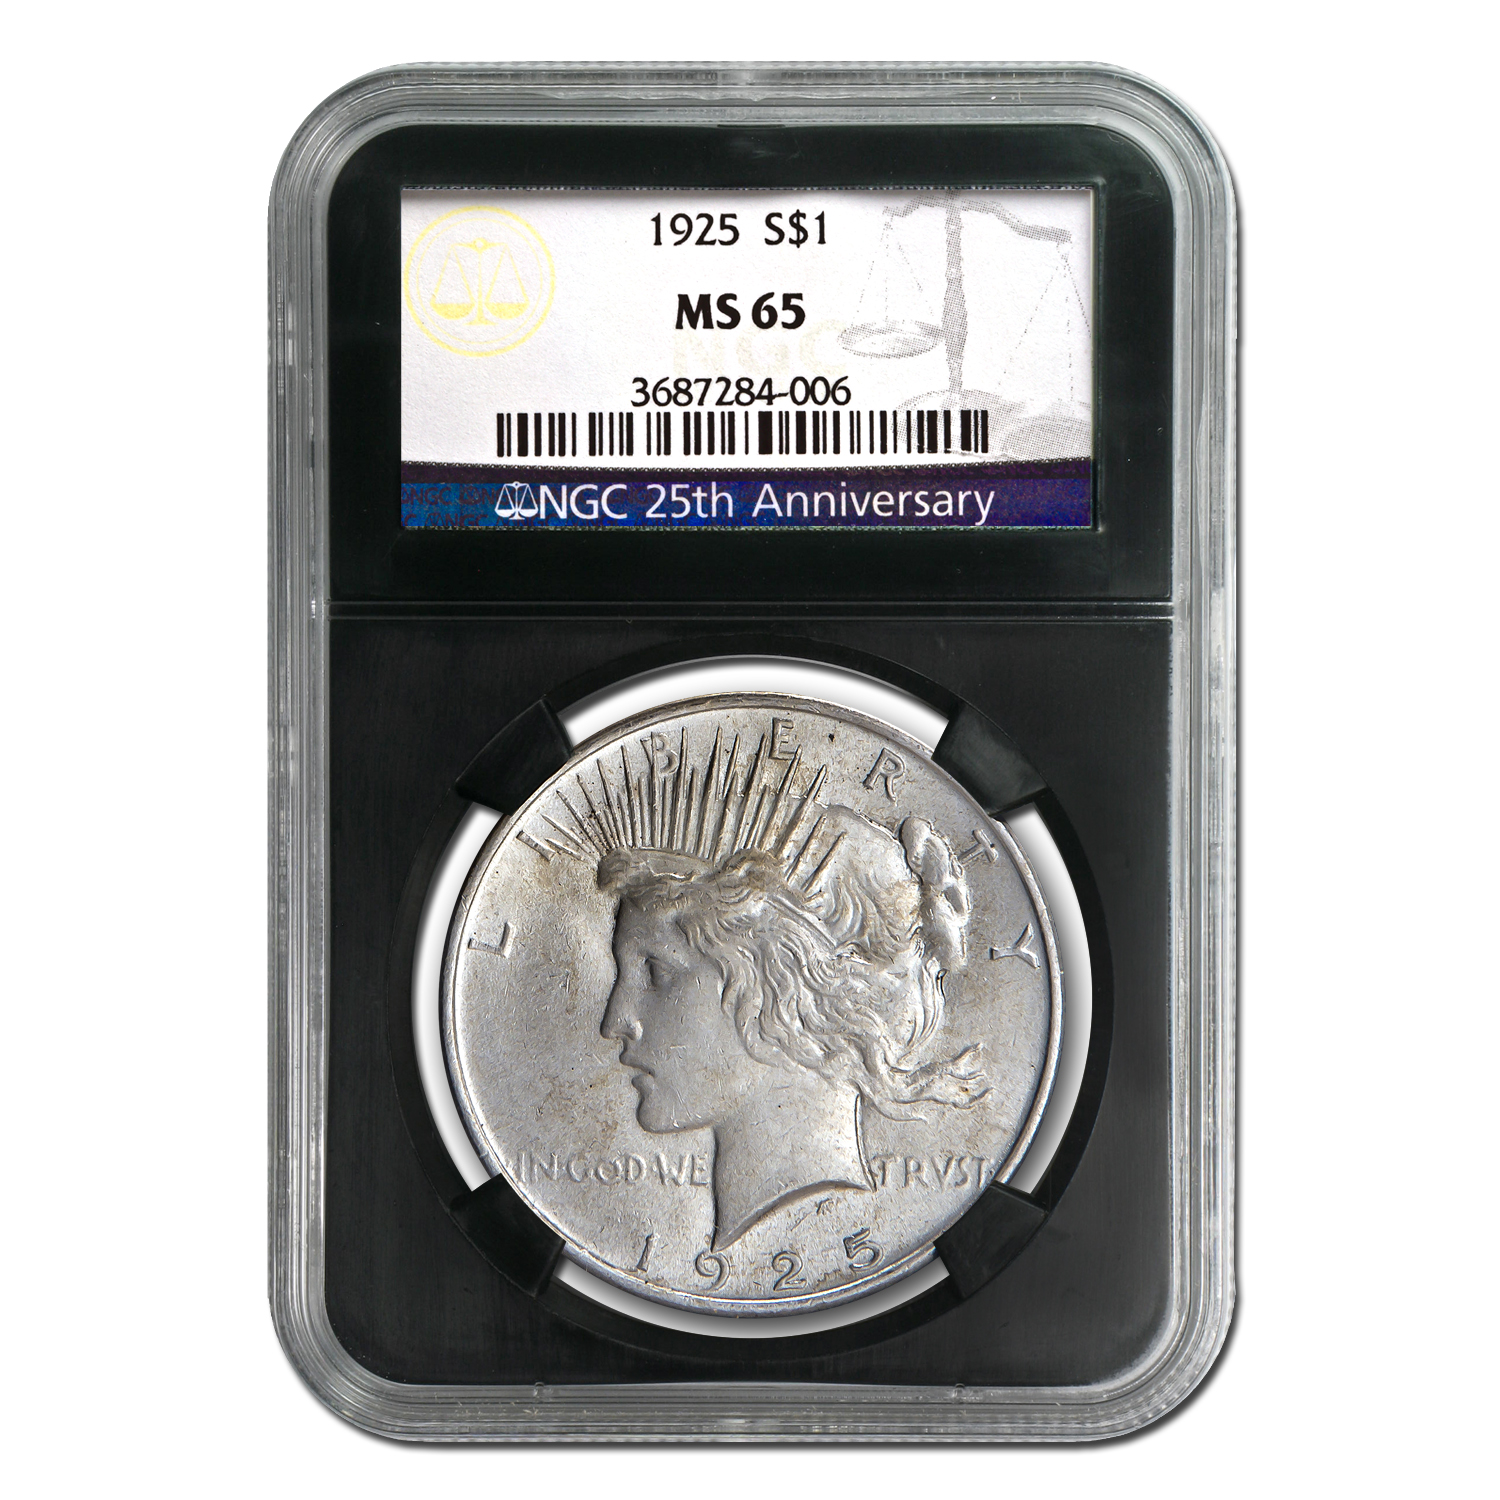 1922-1925 Peace Dollar Set MS-65 NGC (4 Coin 25th Anniversary)